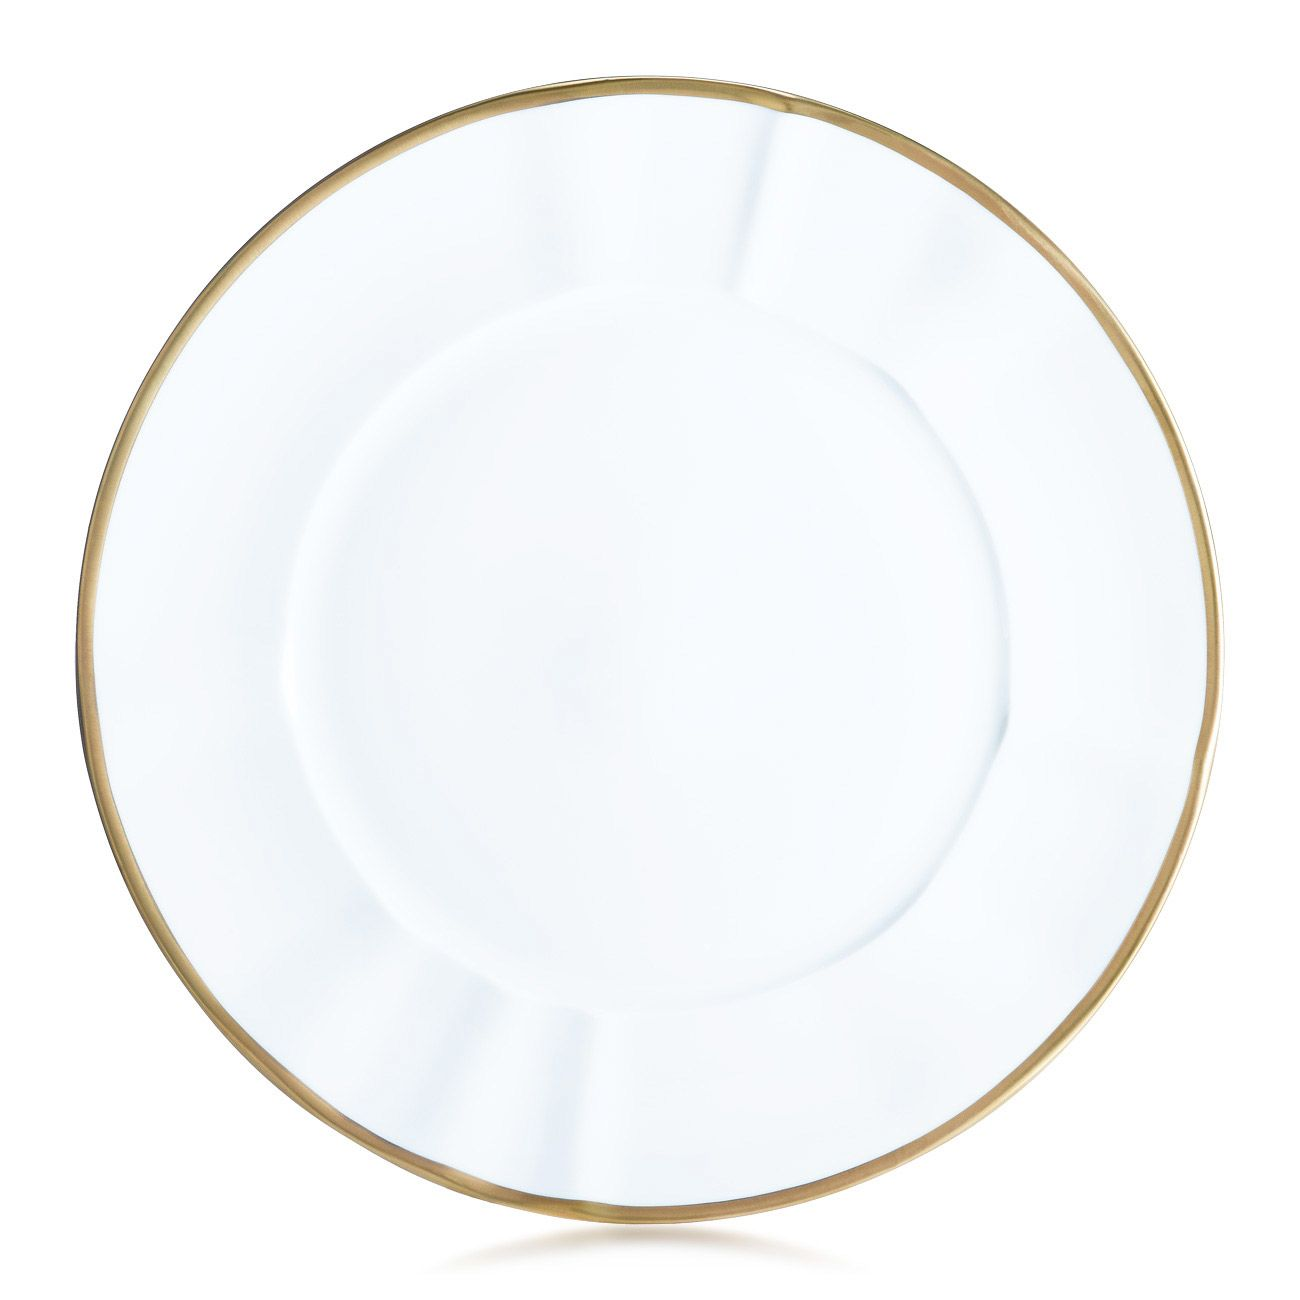 Anna Weatherley Simply Elegant Gold Collection  sc 1 st  Michael C. Fina & Anna Weatherley Simply Elegant Gold Dinnerware Collection - Michael ...